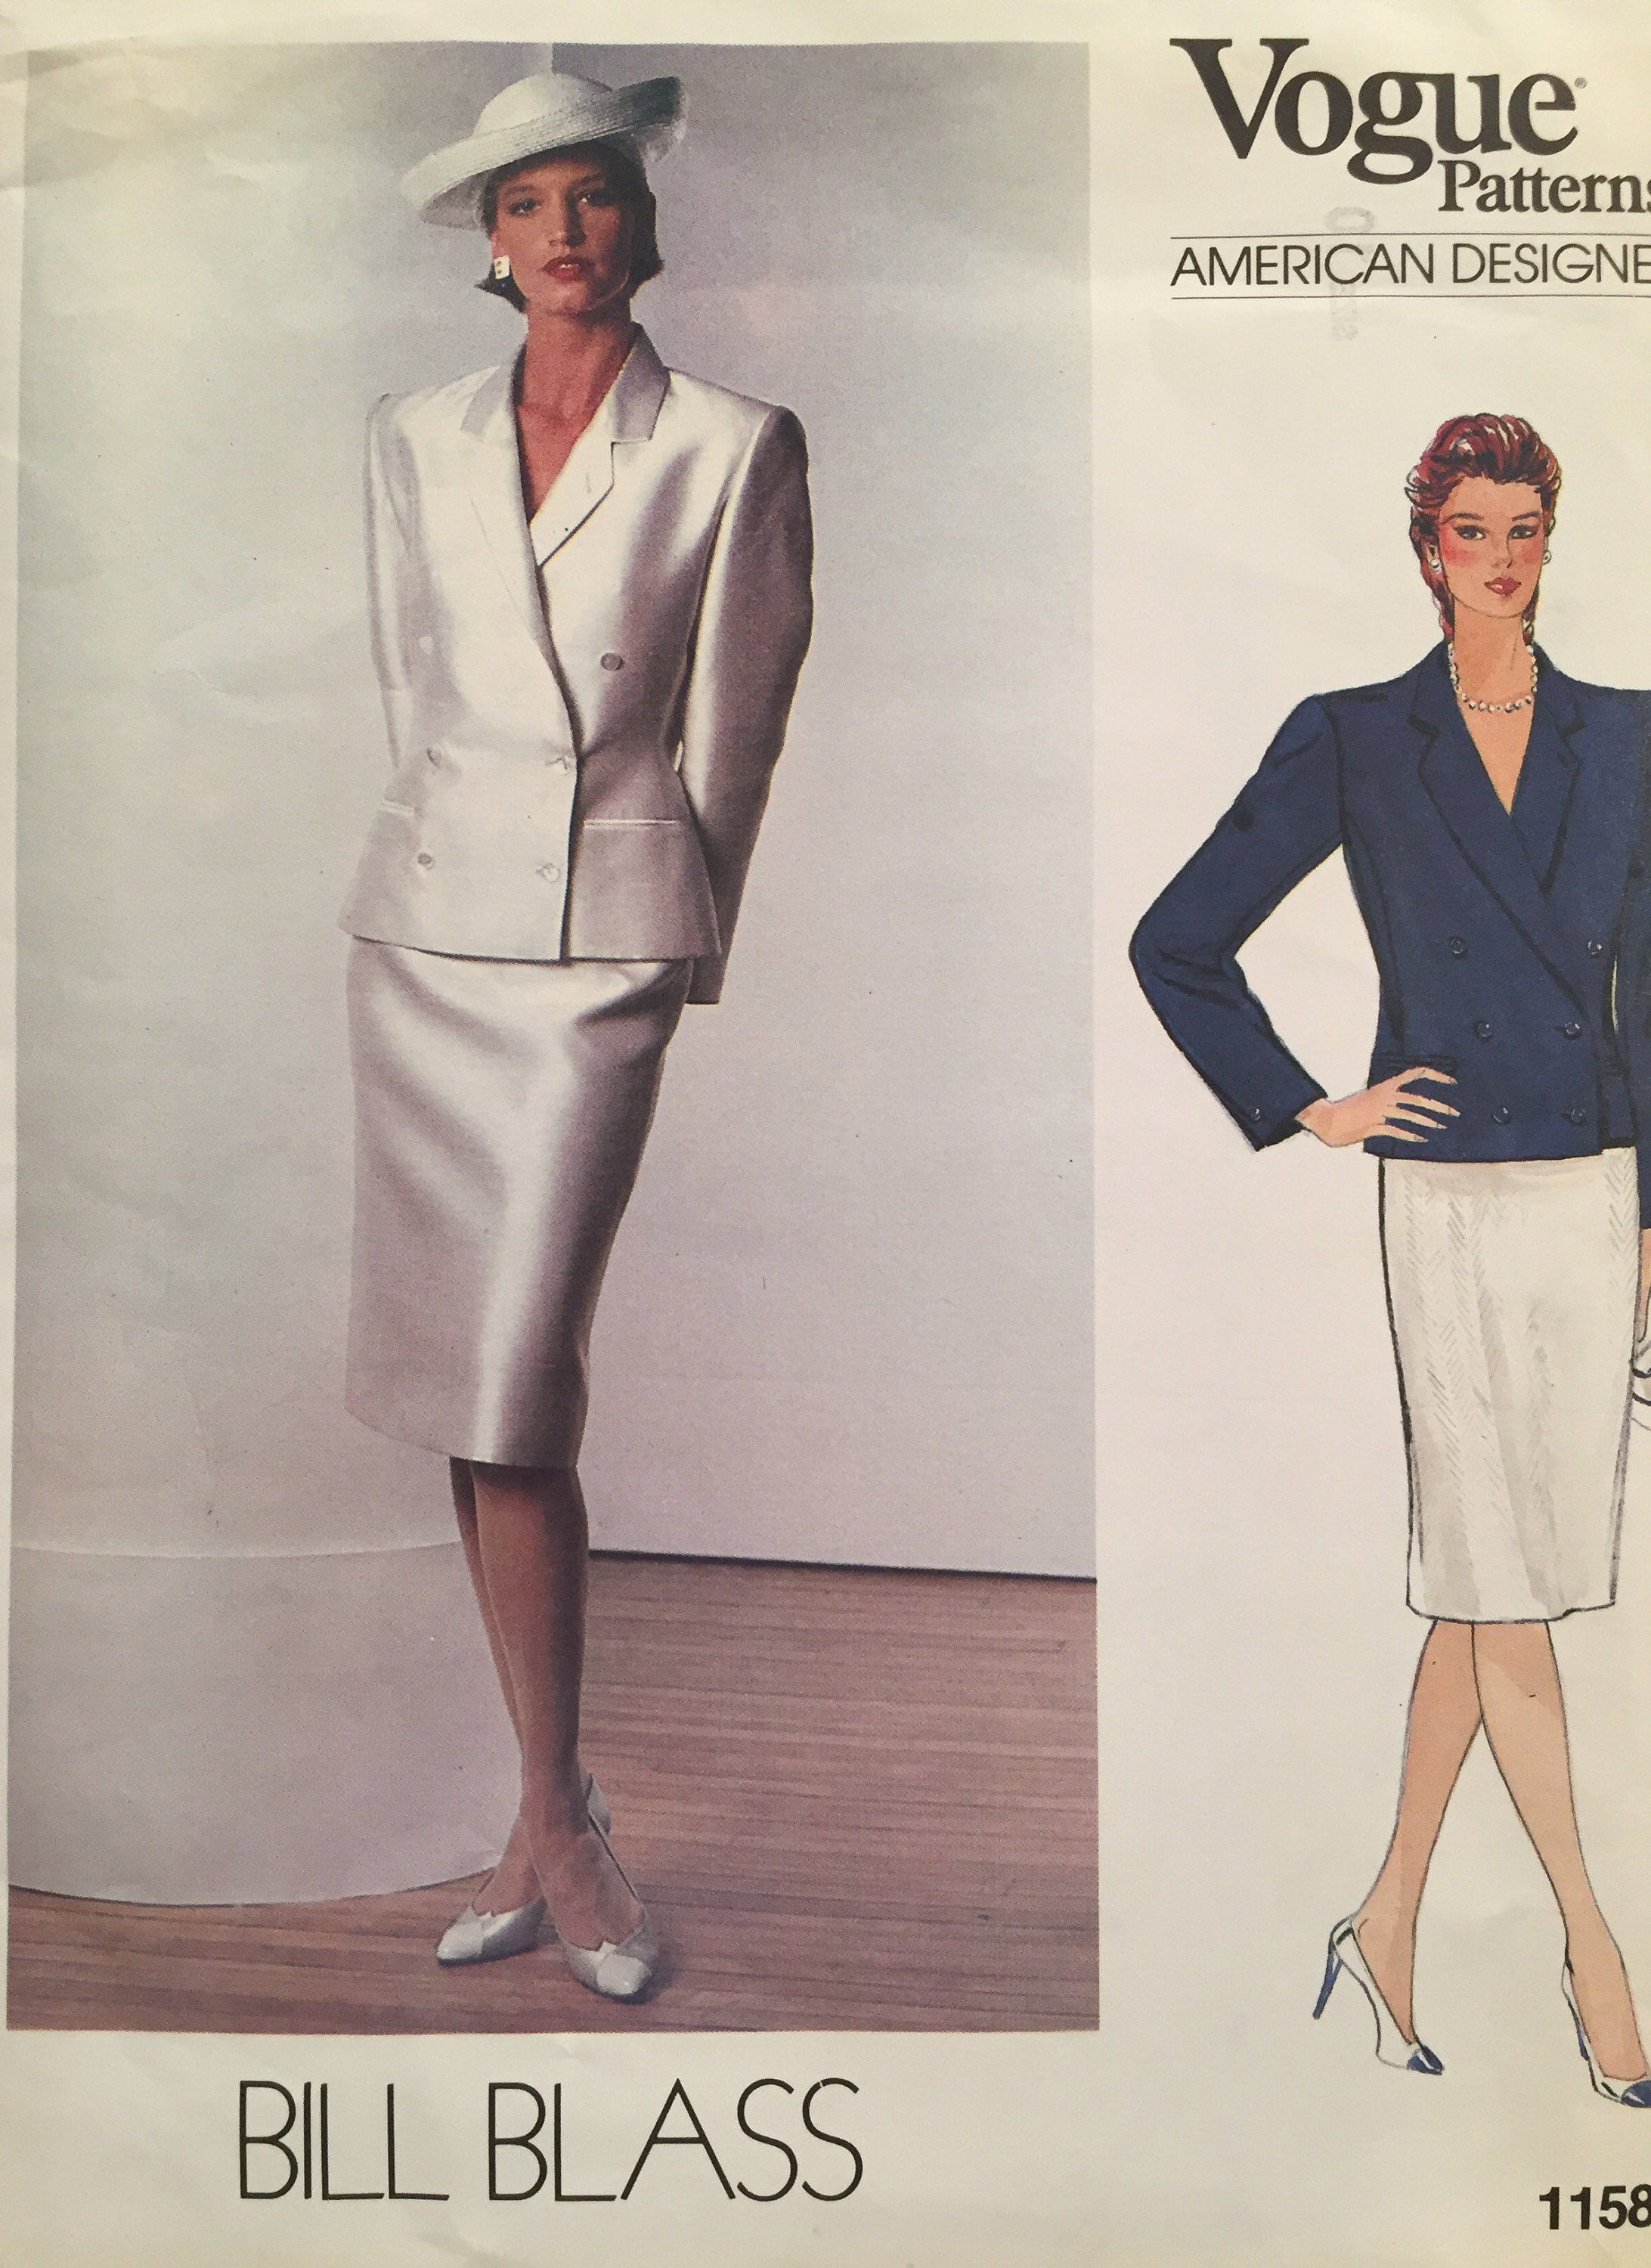 Excited to share the latest addition to my  etsy shop  Vogue Bill BlassSuit  Double 4fe6704e4